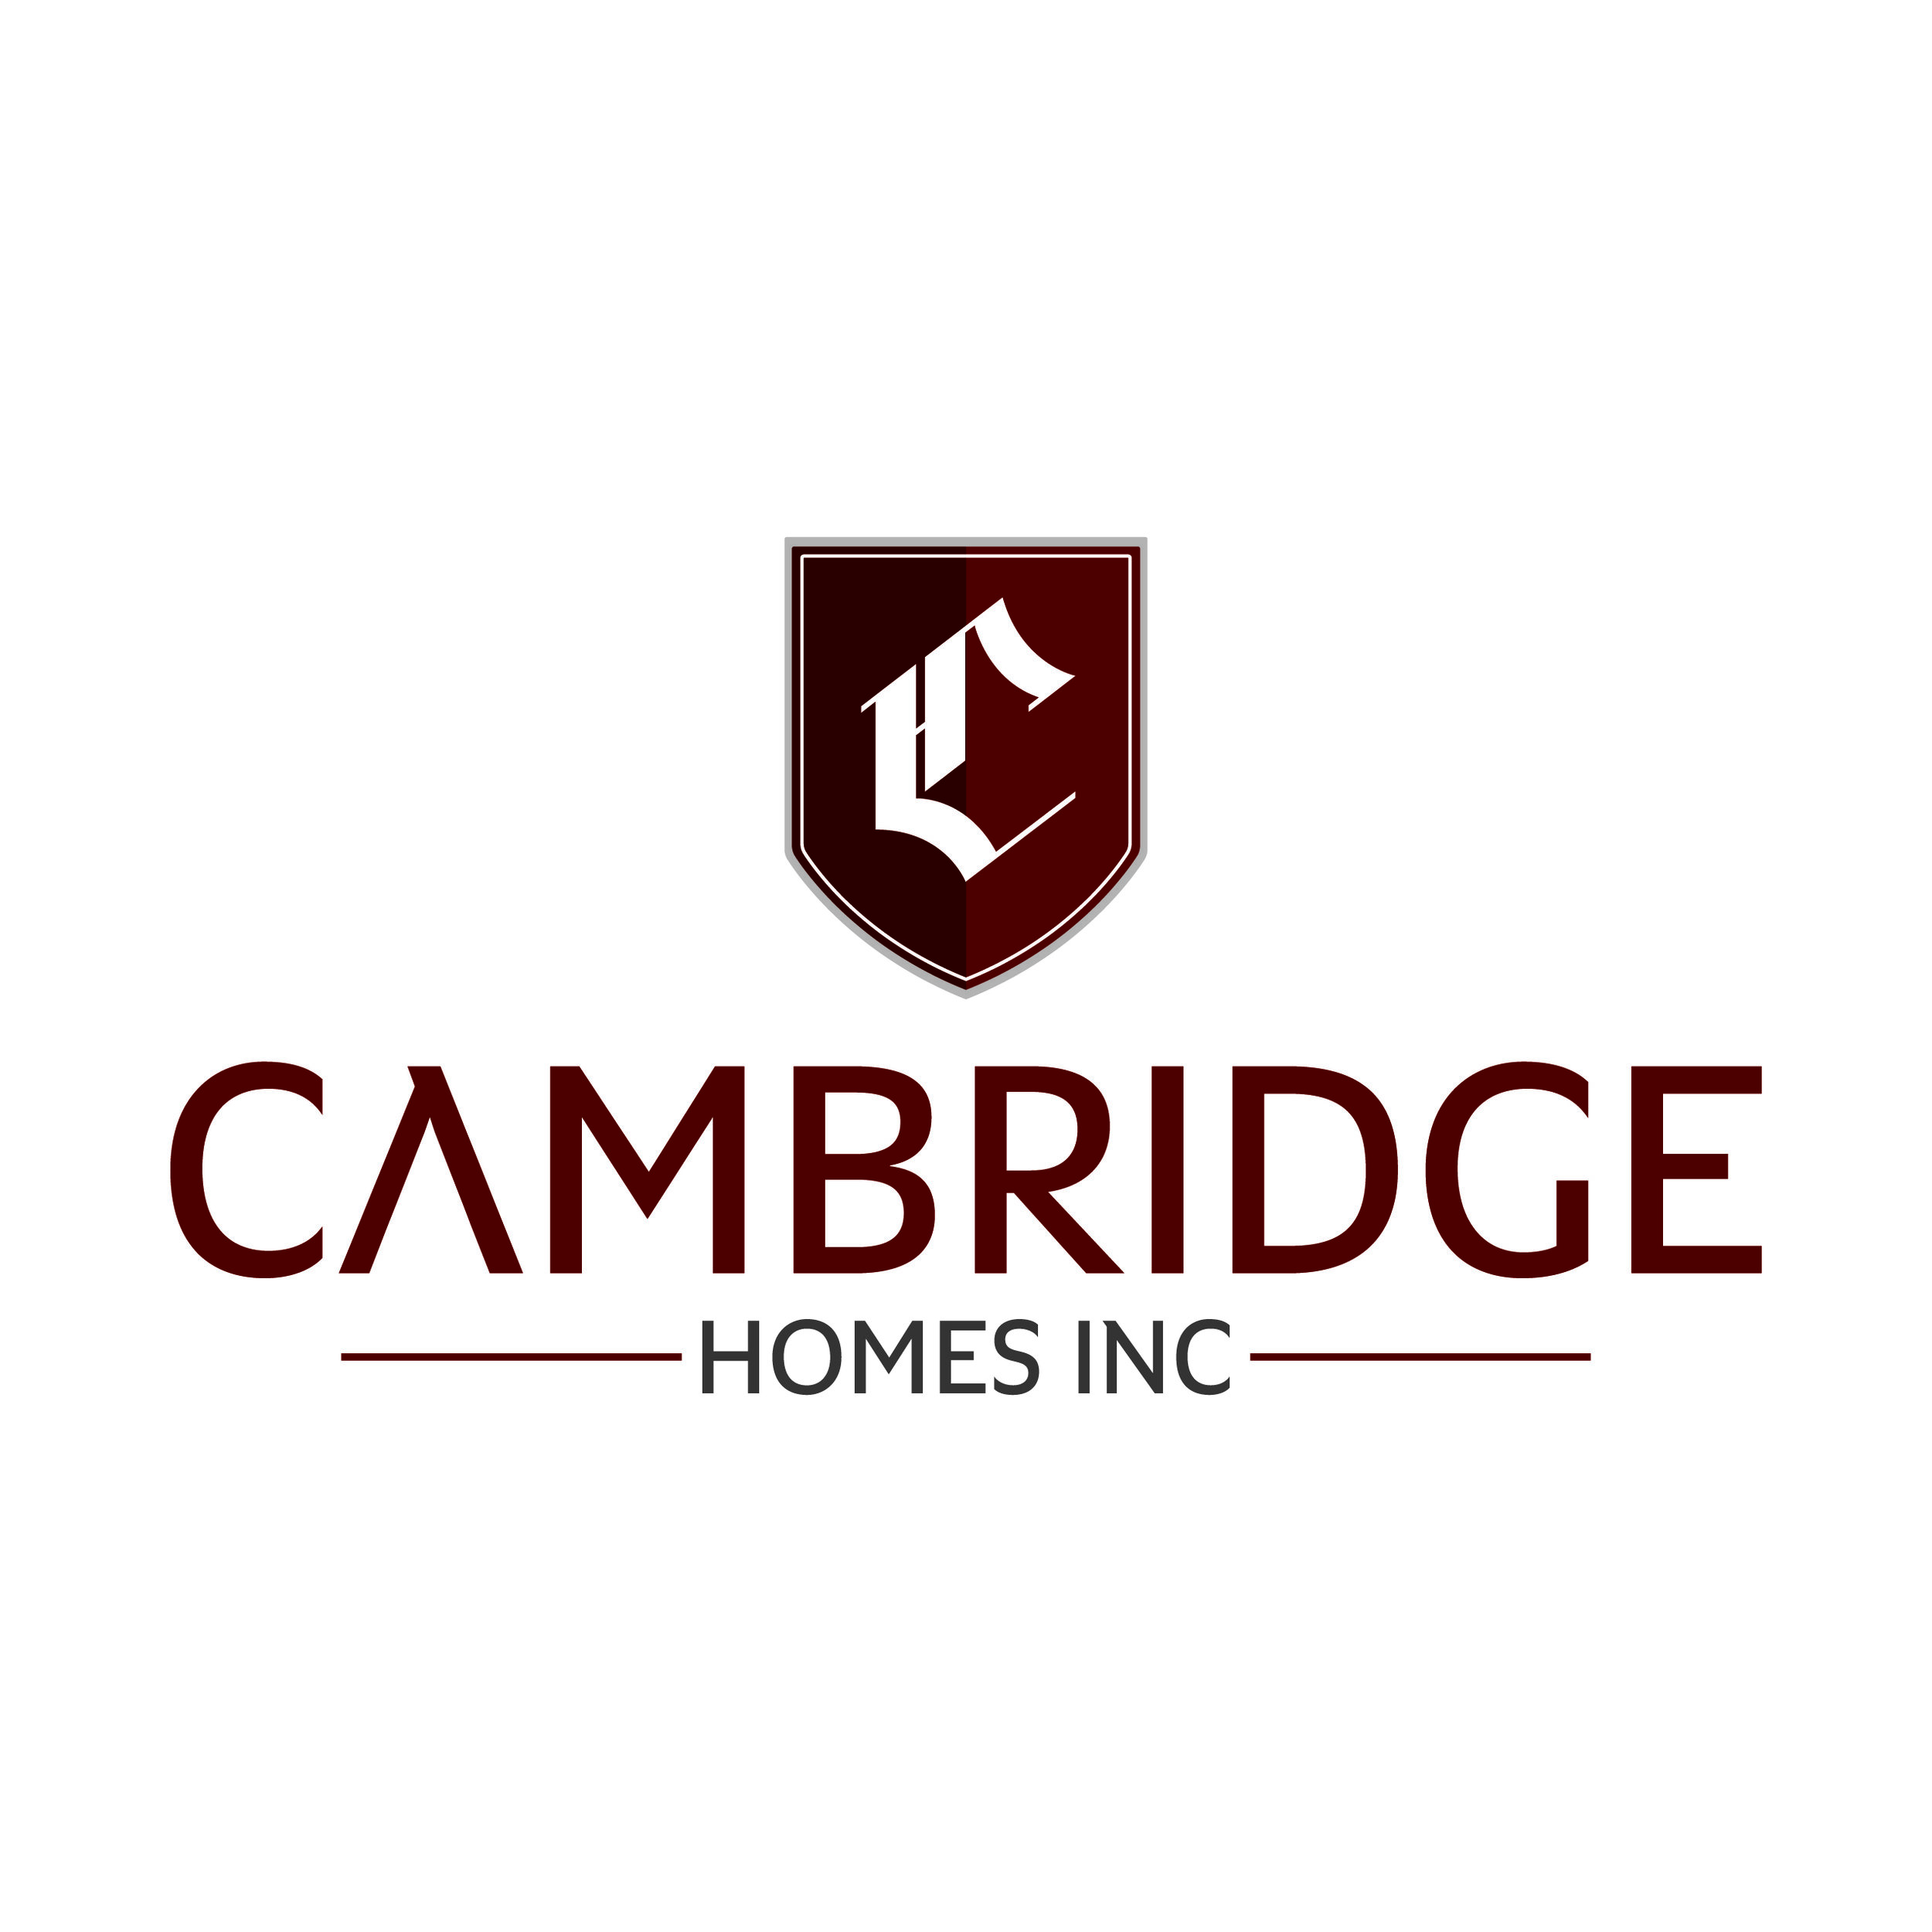 Customize.. - Our team is well equipped to handle custom projects as well, contact us today to get started on your dream home!